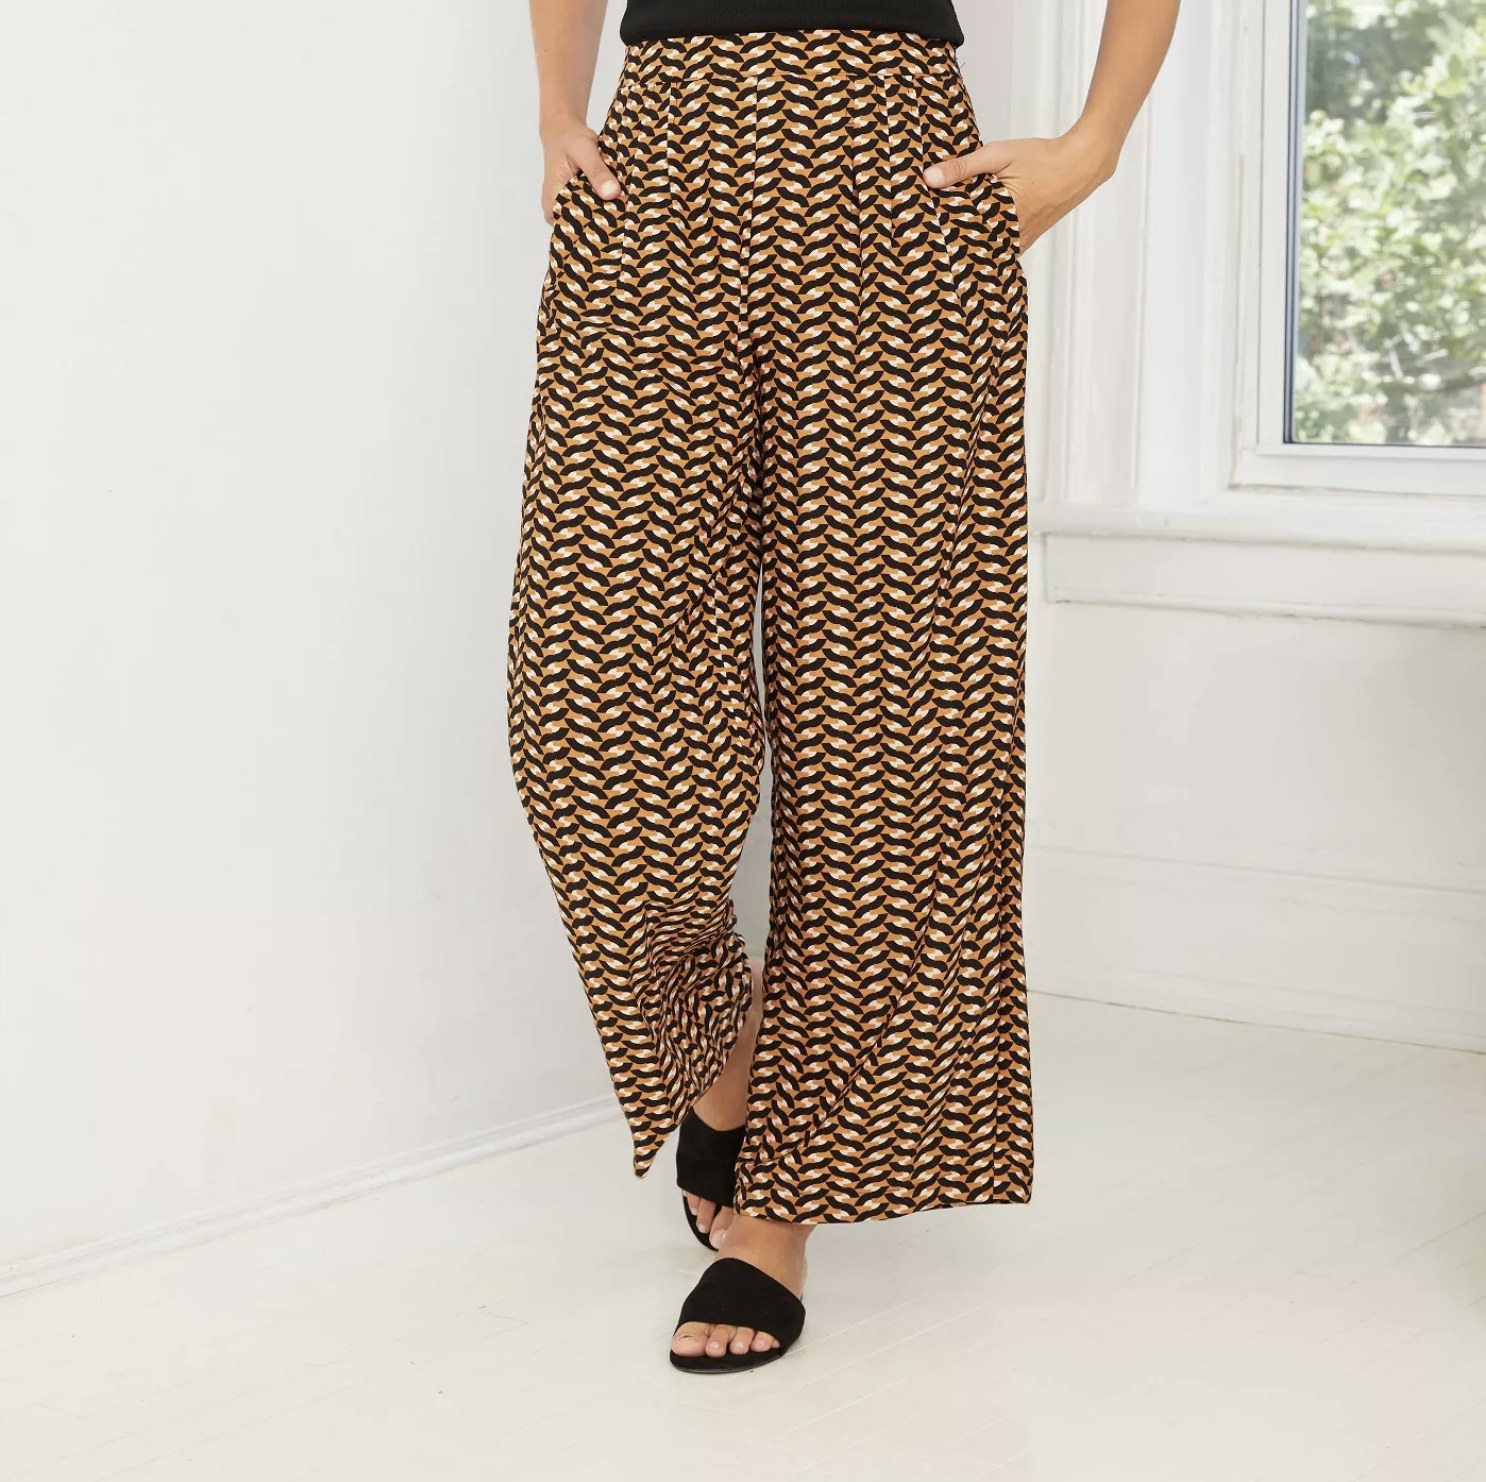 Model is wearing a pair of black and gold geometric print wide-leg pants with pockets and black slides